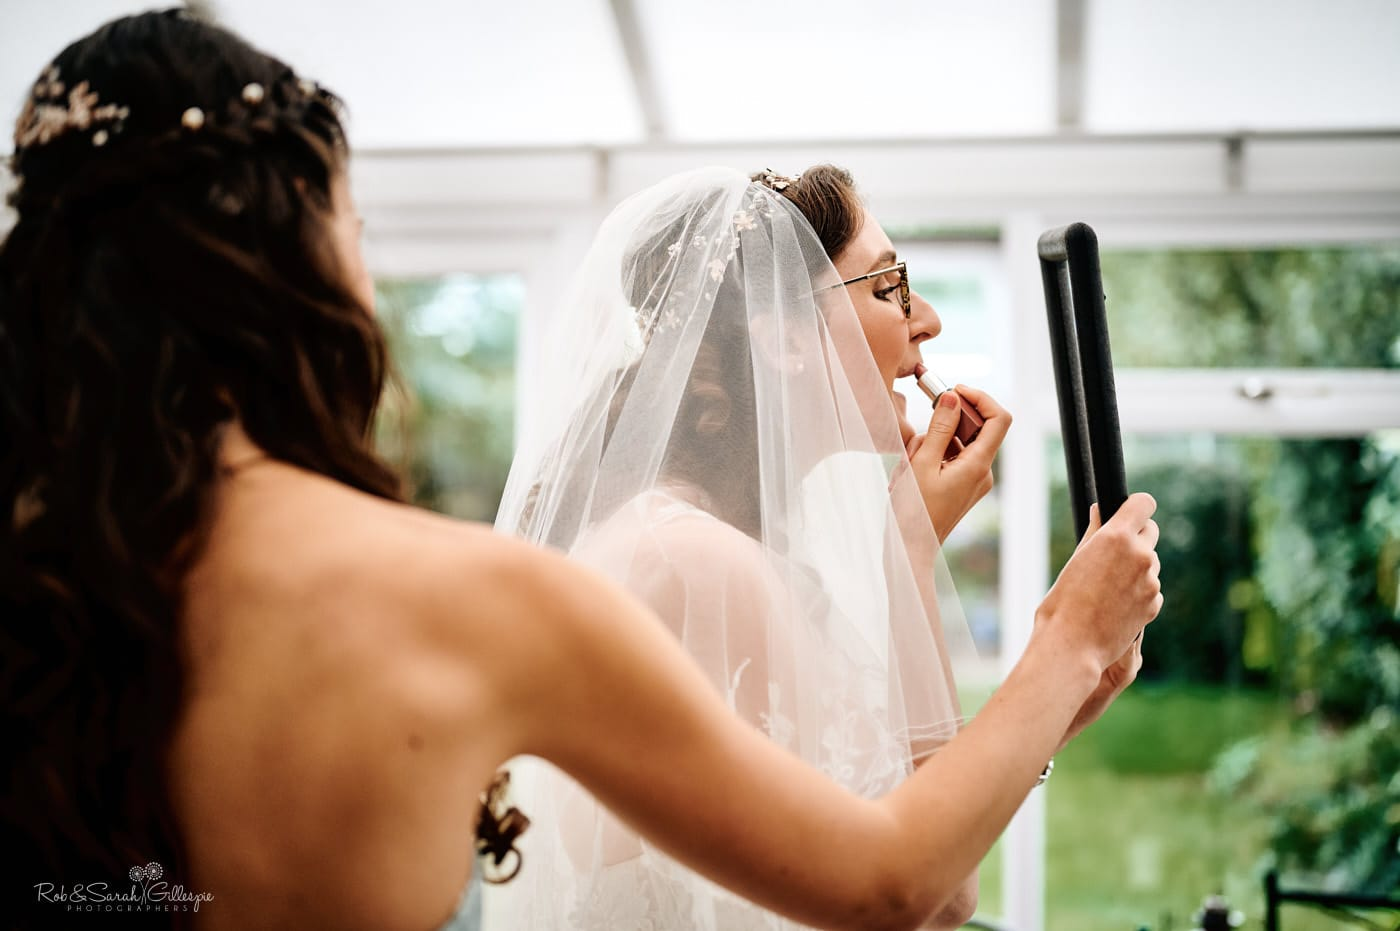 Bride applies lipstick for wedding